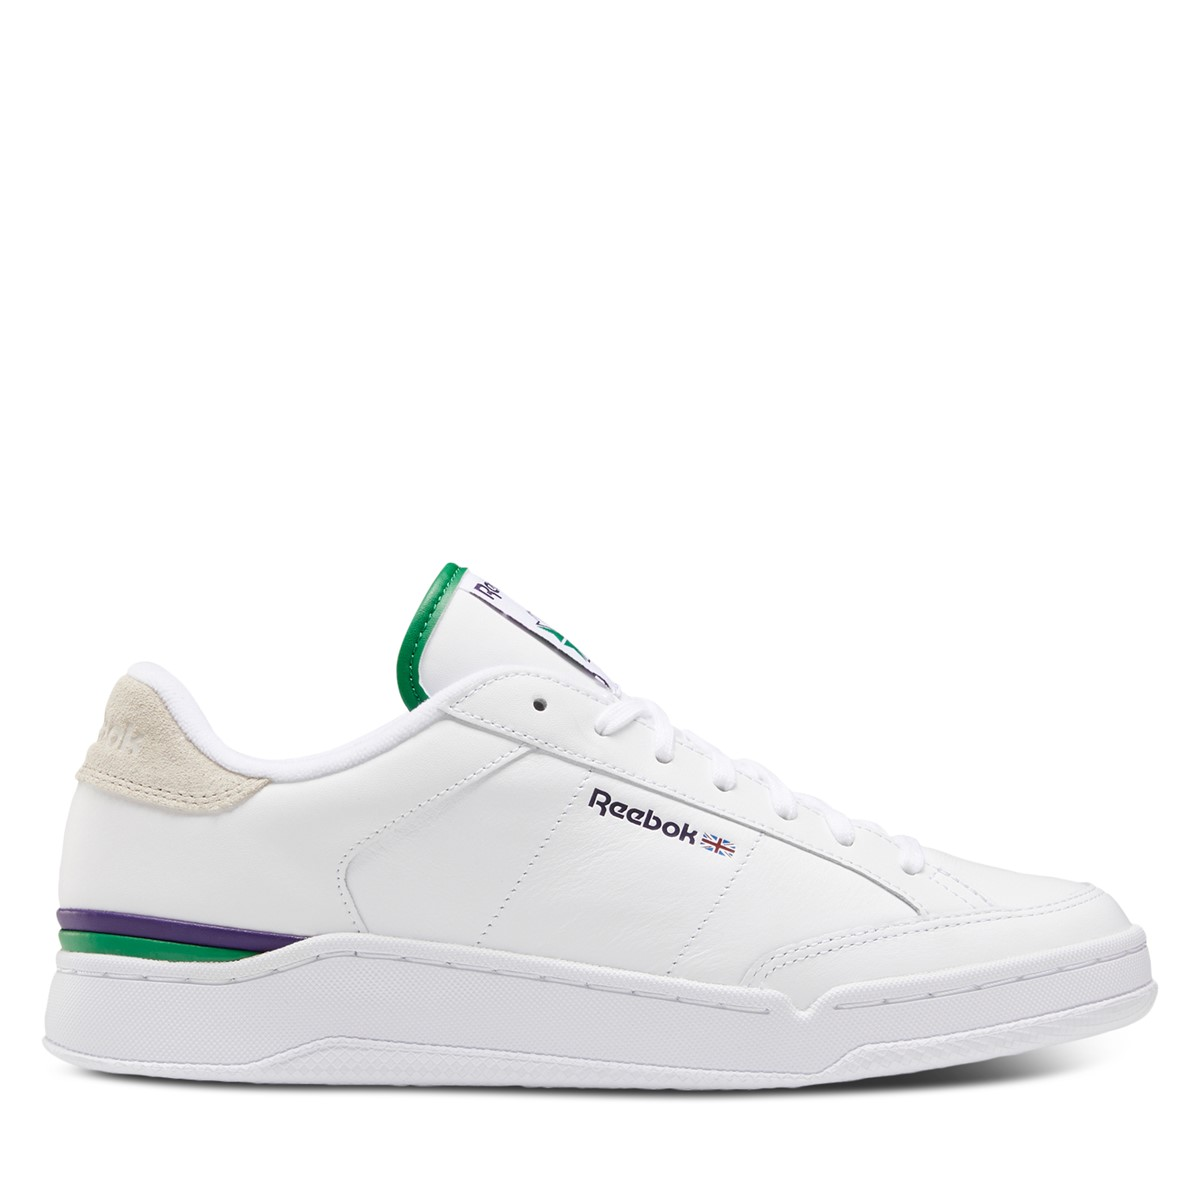 Men's Ad Court Sneakers in White